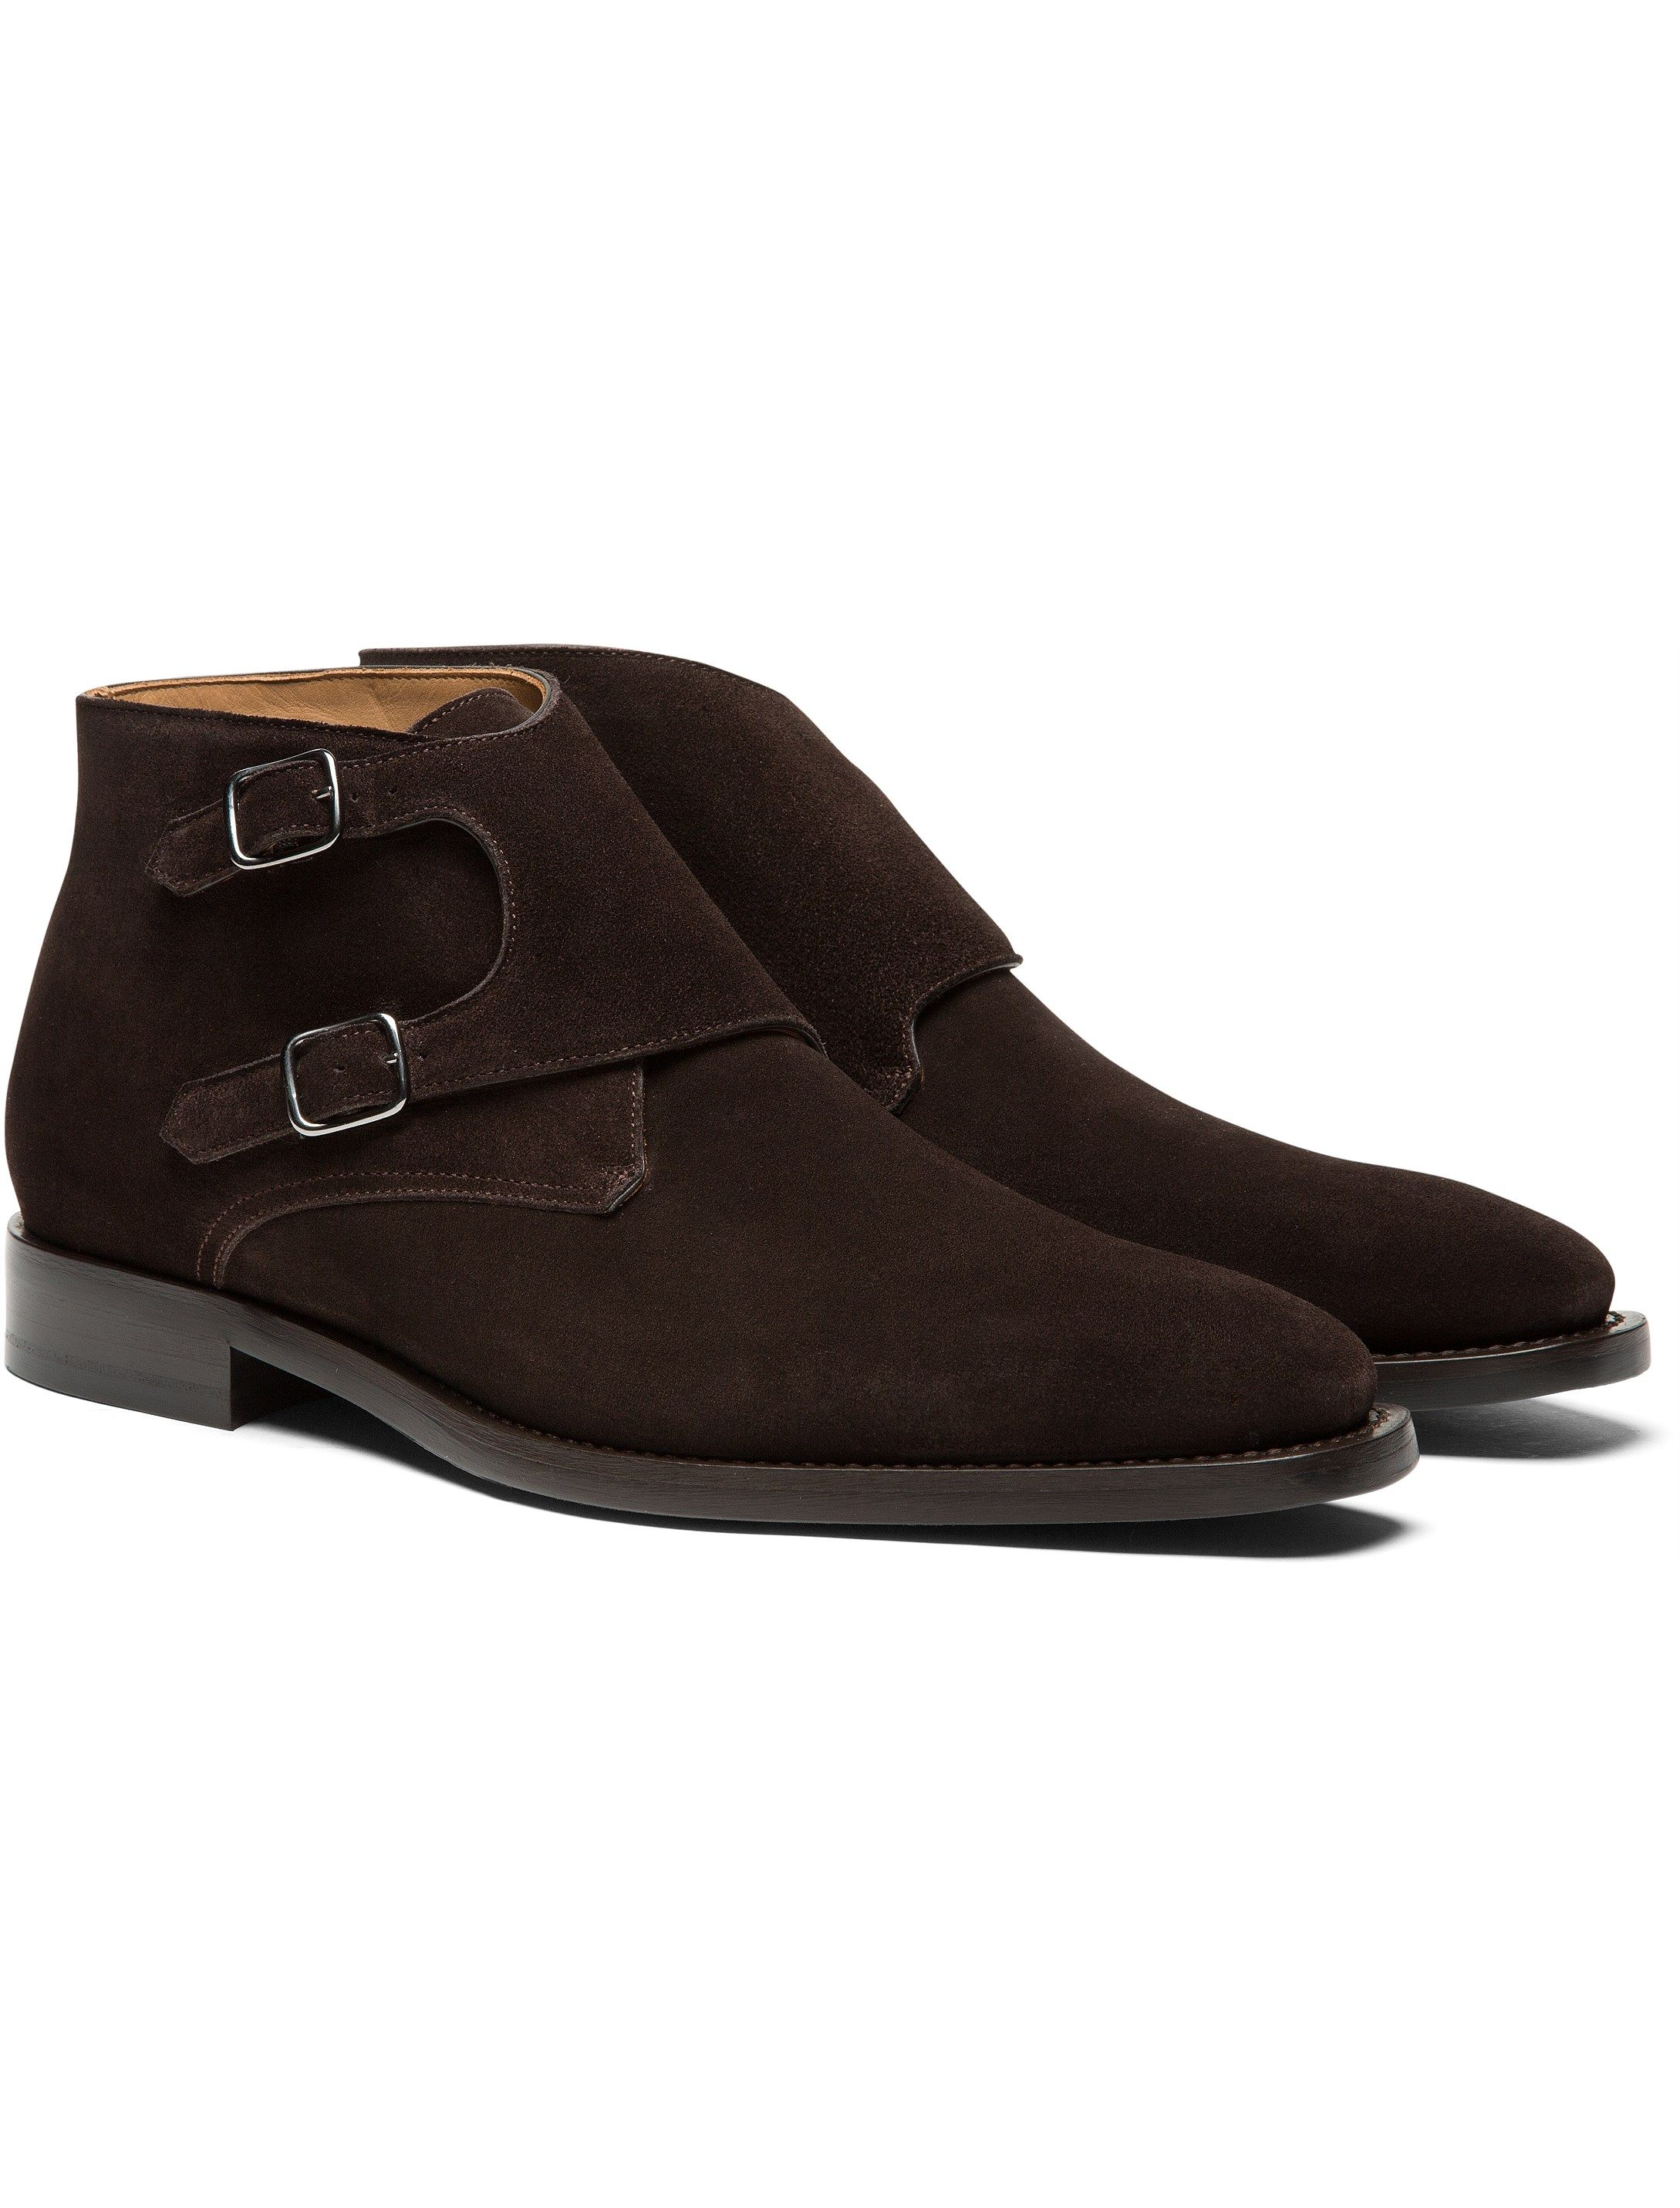 53821d395e9 Shoes Dark Brown Boot Fw162251 Suitsupply Online Store 1.jpg (2178 ...